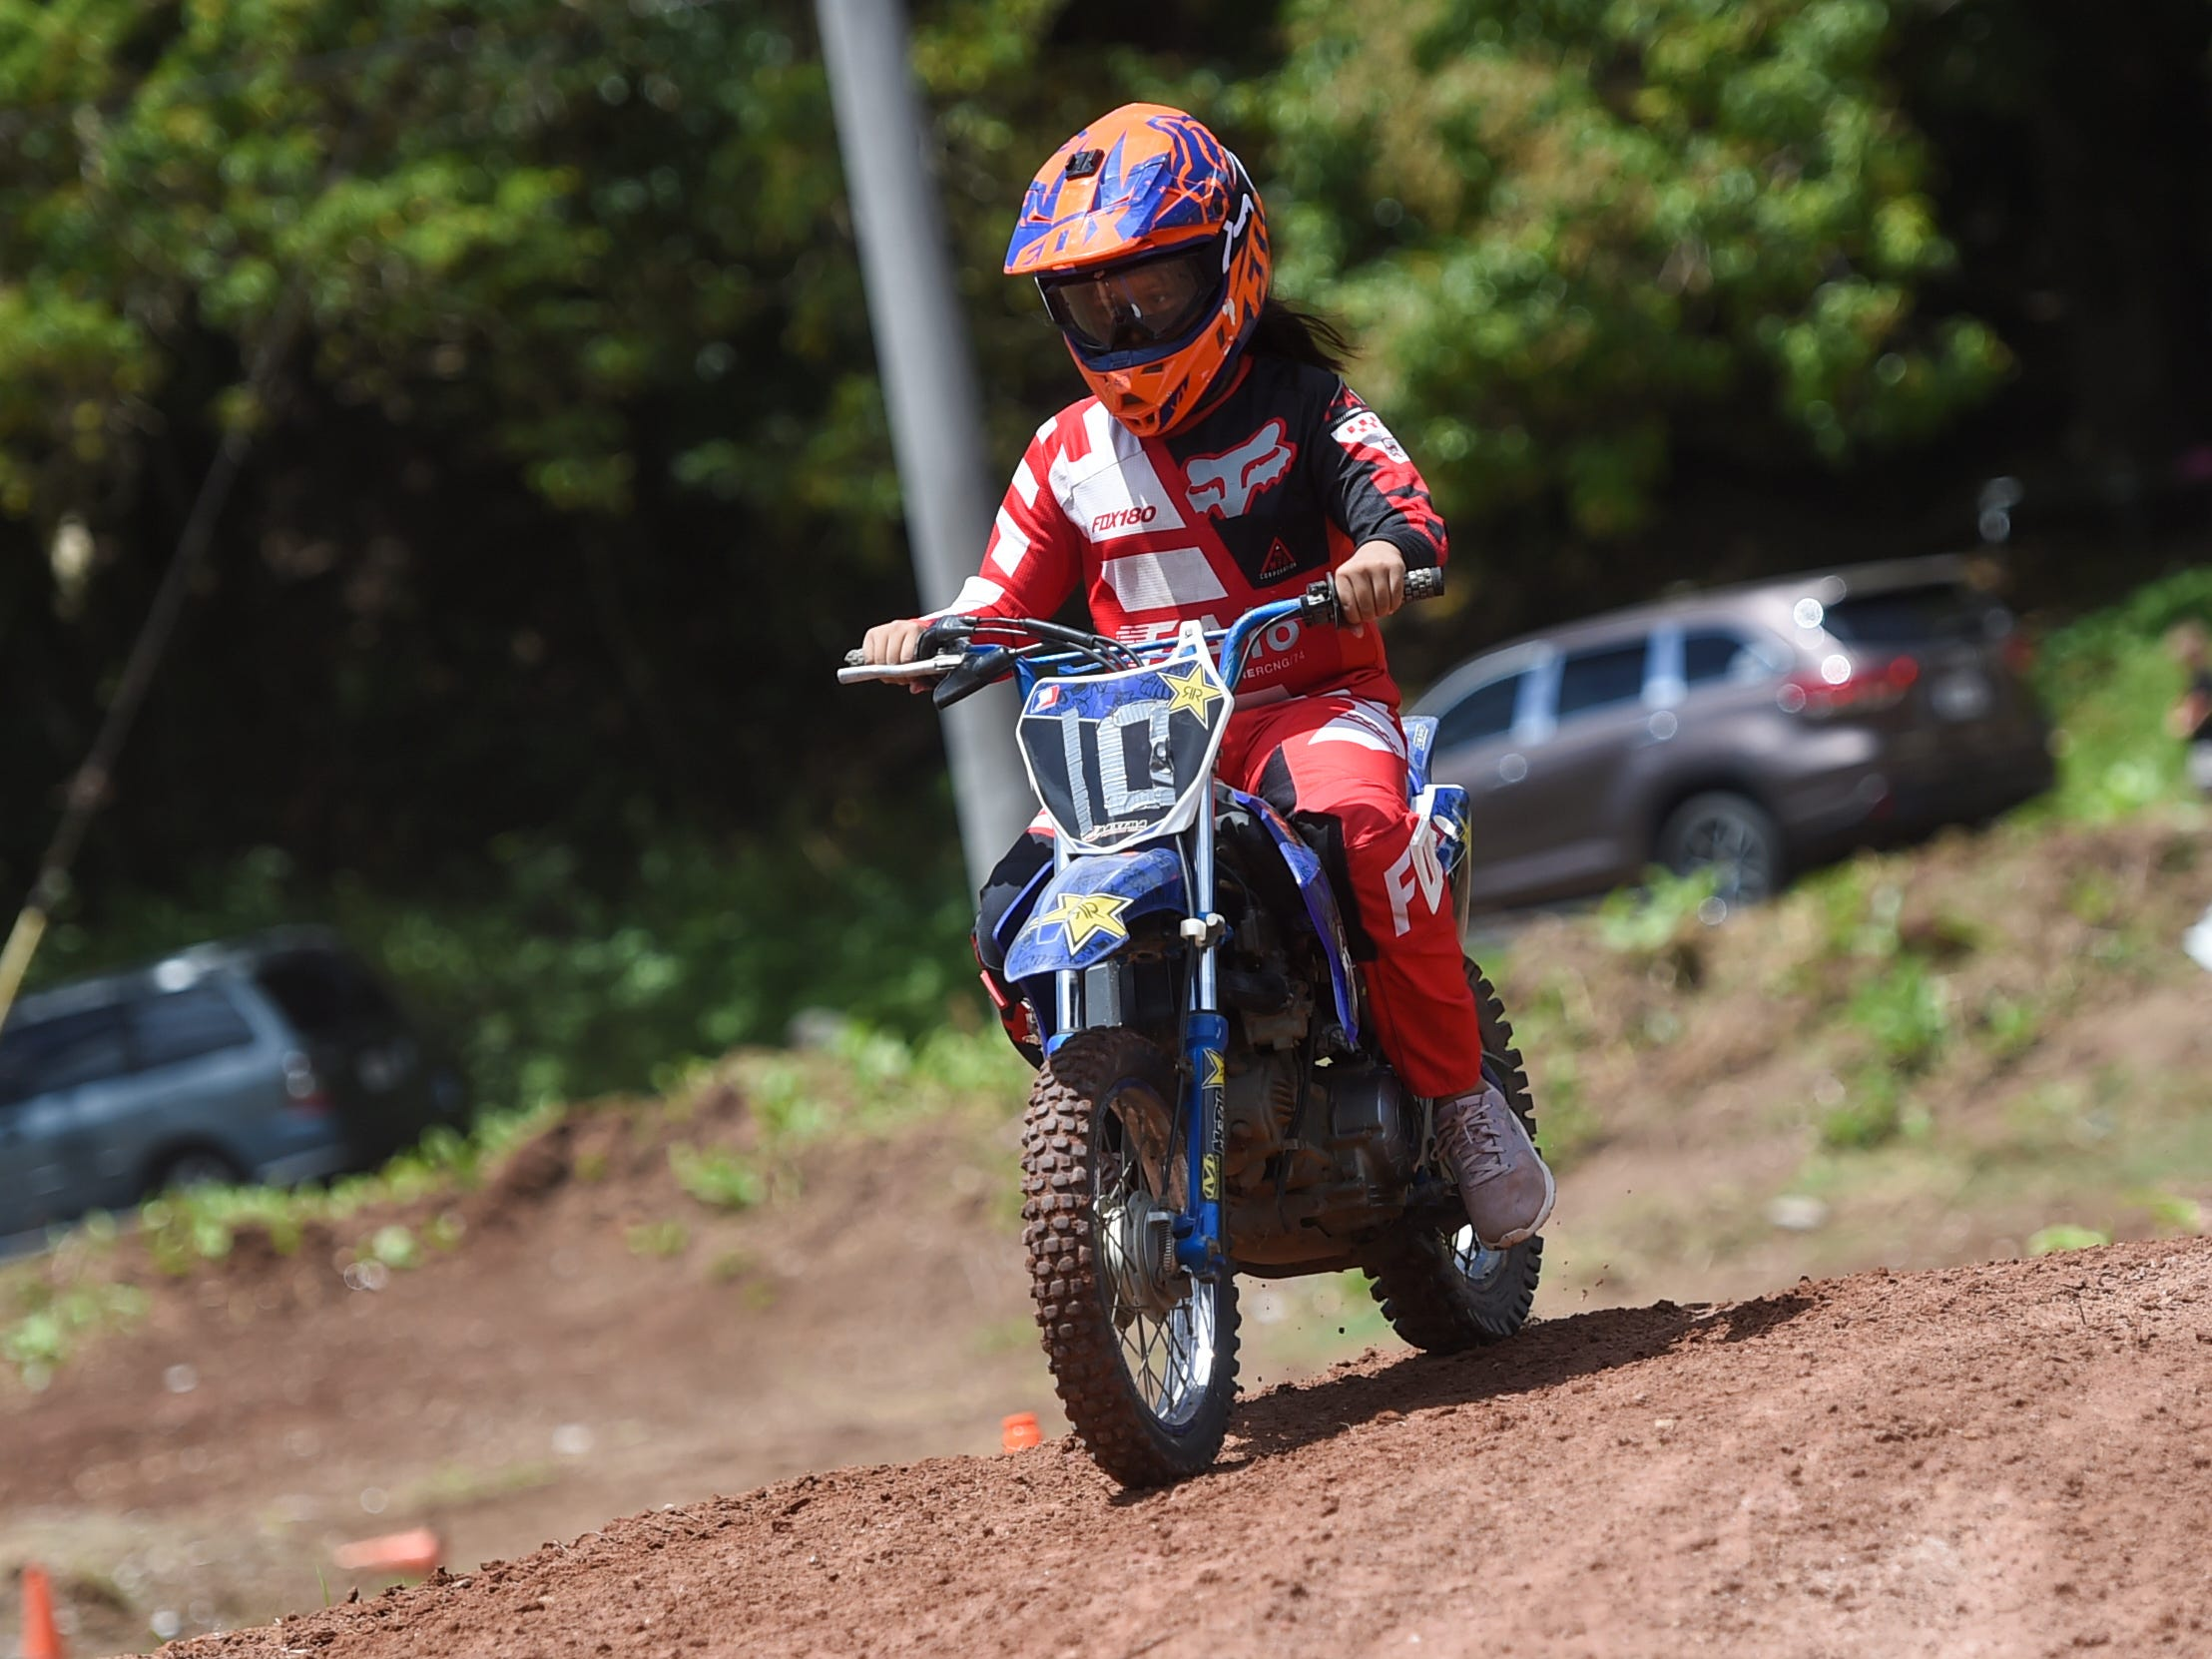 Motocross racer Jerisha Guzman competes during the Guam History and Chamorro Heritage Day Festival 2019 at Umatac Bay Park, March 10, 2019.